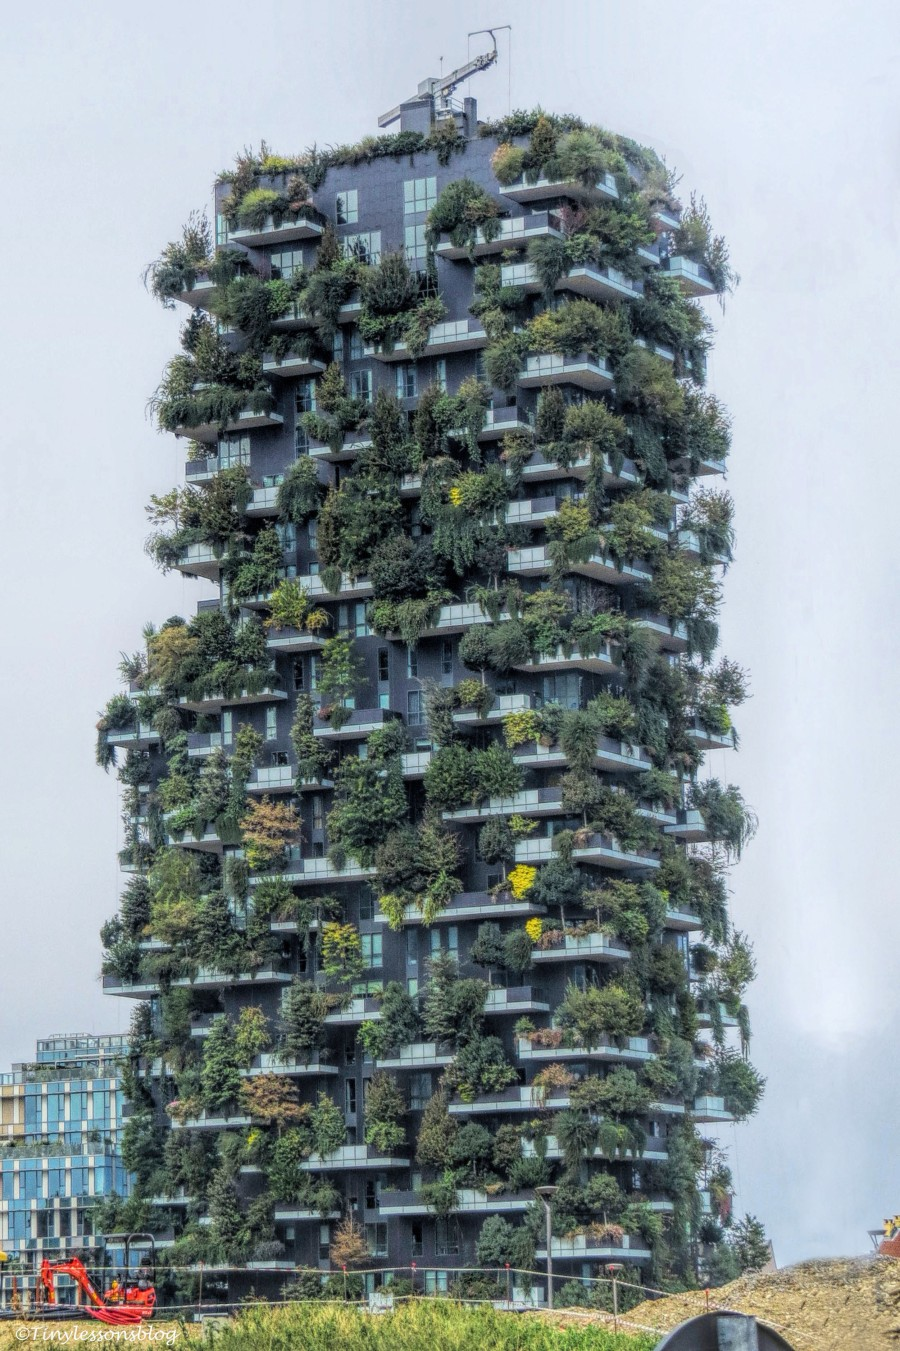 Bosco Verticale Vertical Forest in Milan_edited-1